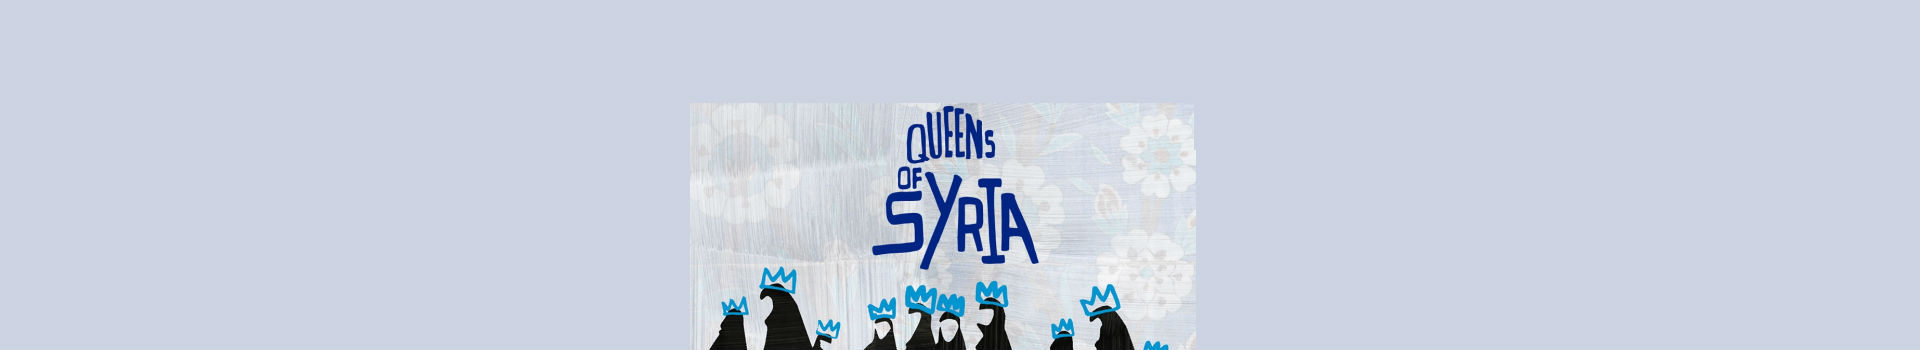 Queens of Syria banner image